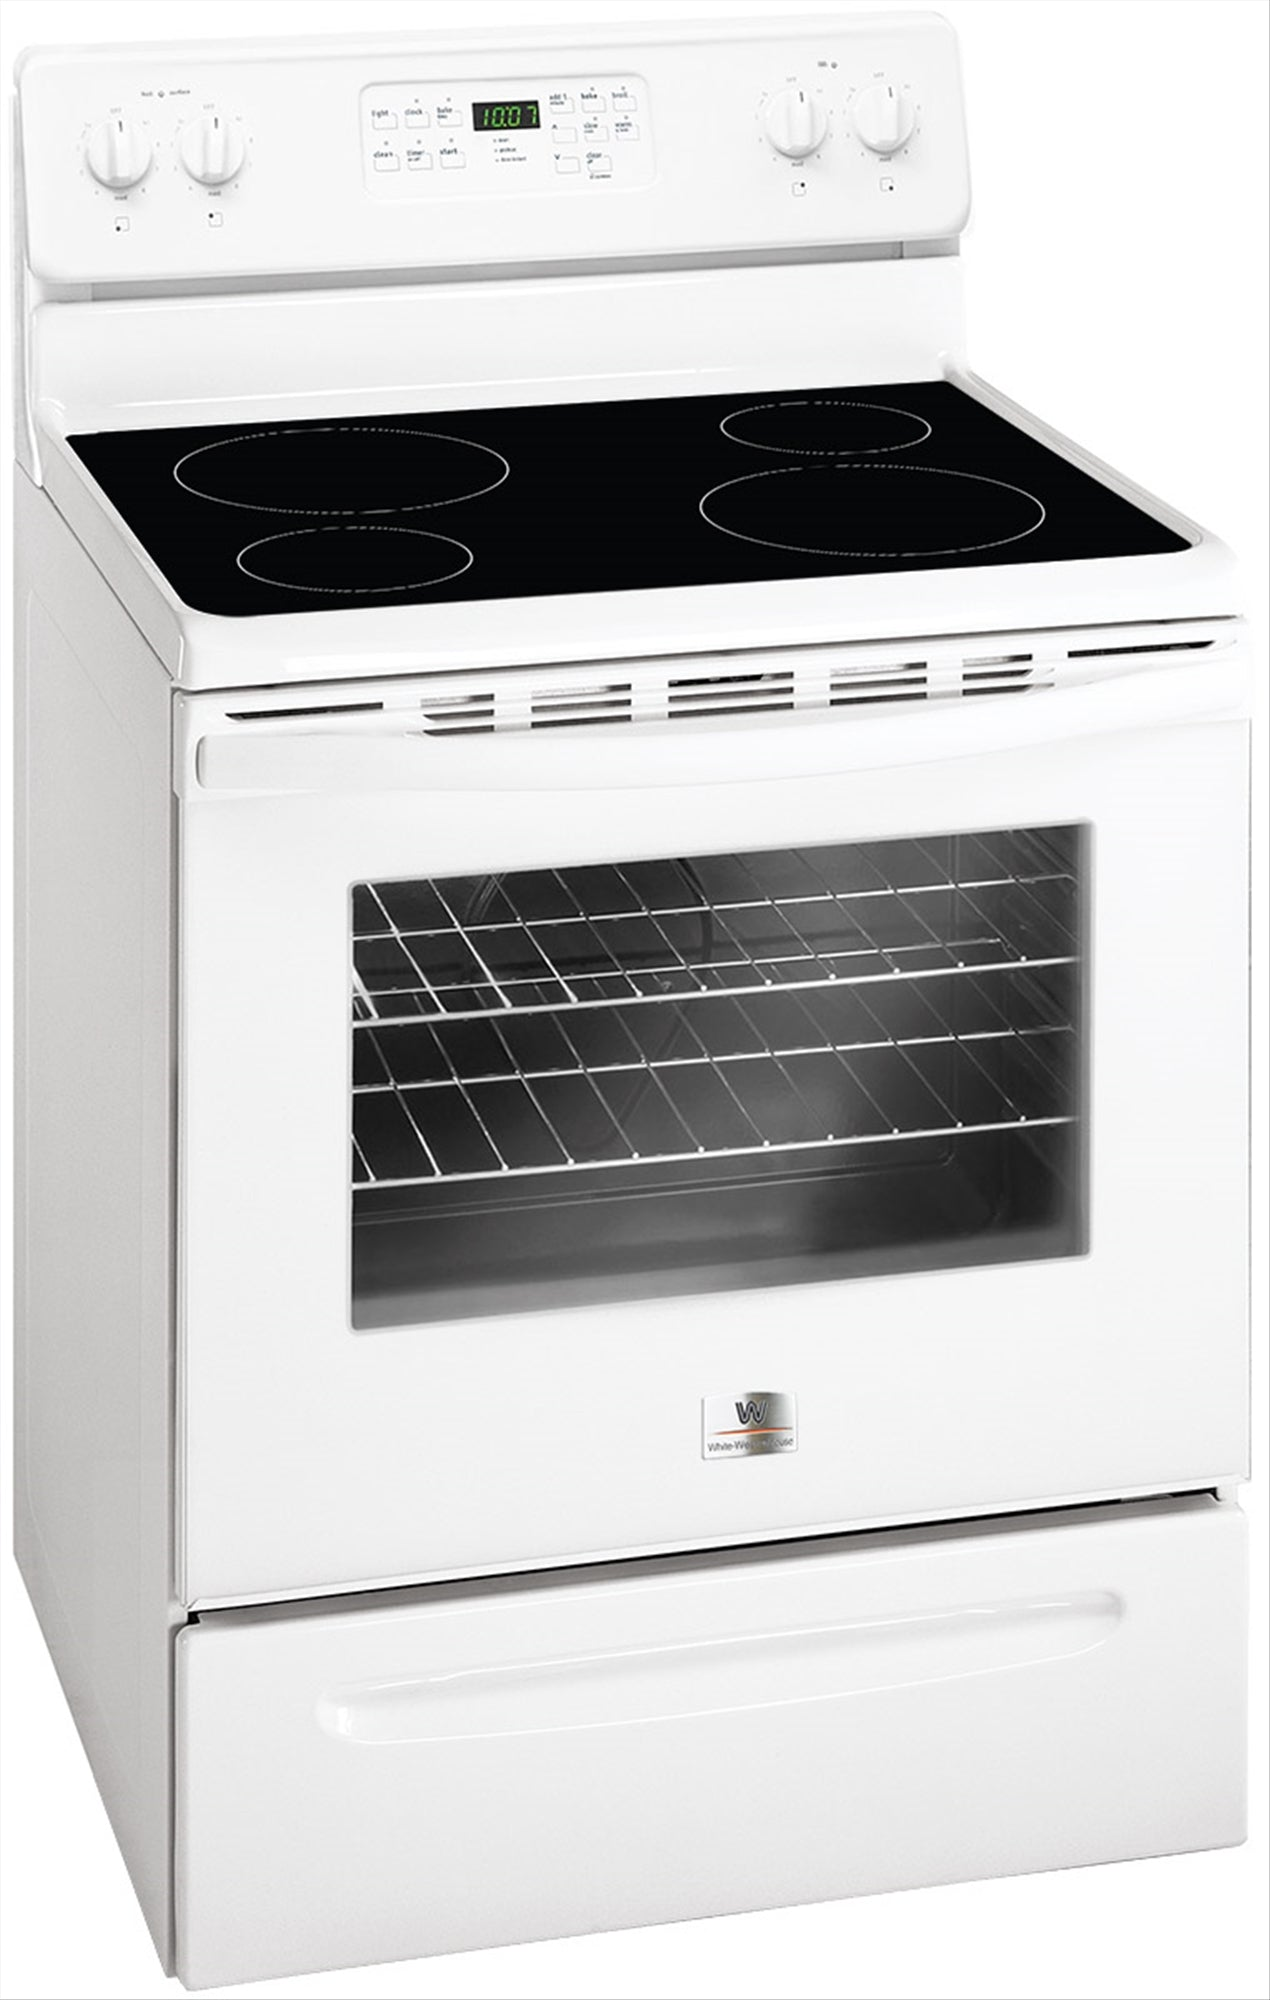 White Westinghouse Cerramic & Electric Oven - MFF3025RW